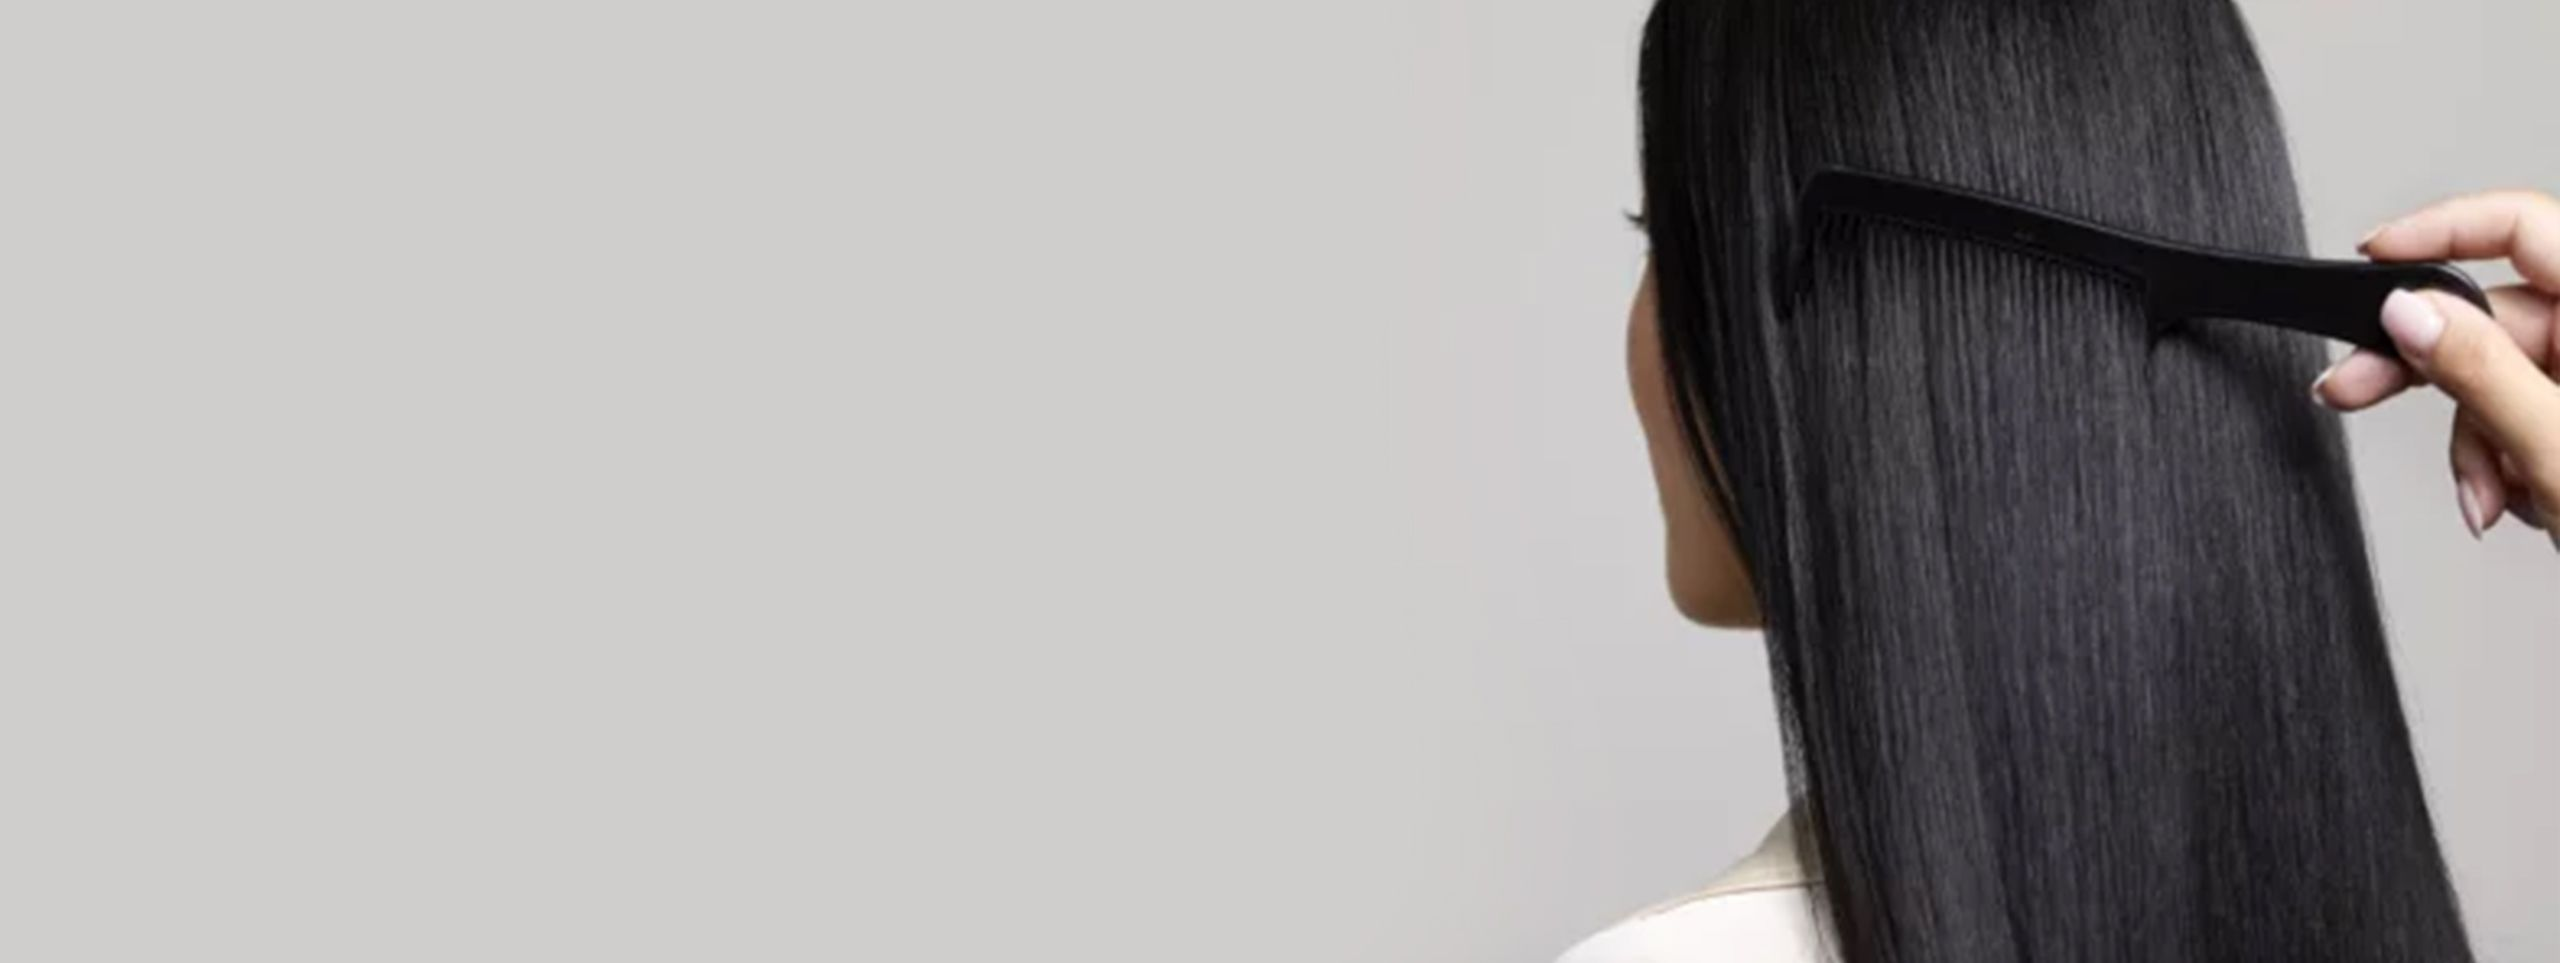 regularly trimming the ends does not stimulate hair growth